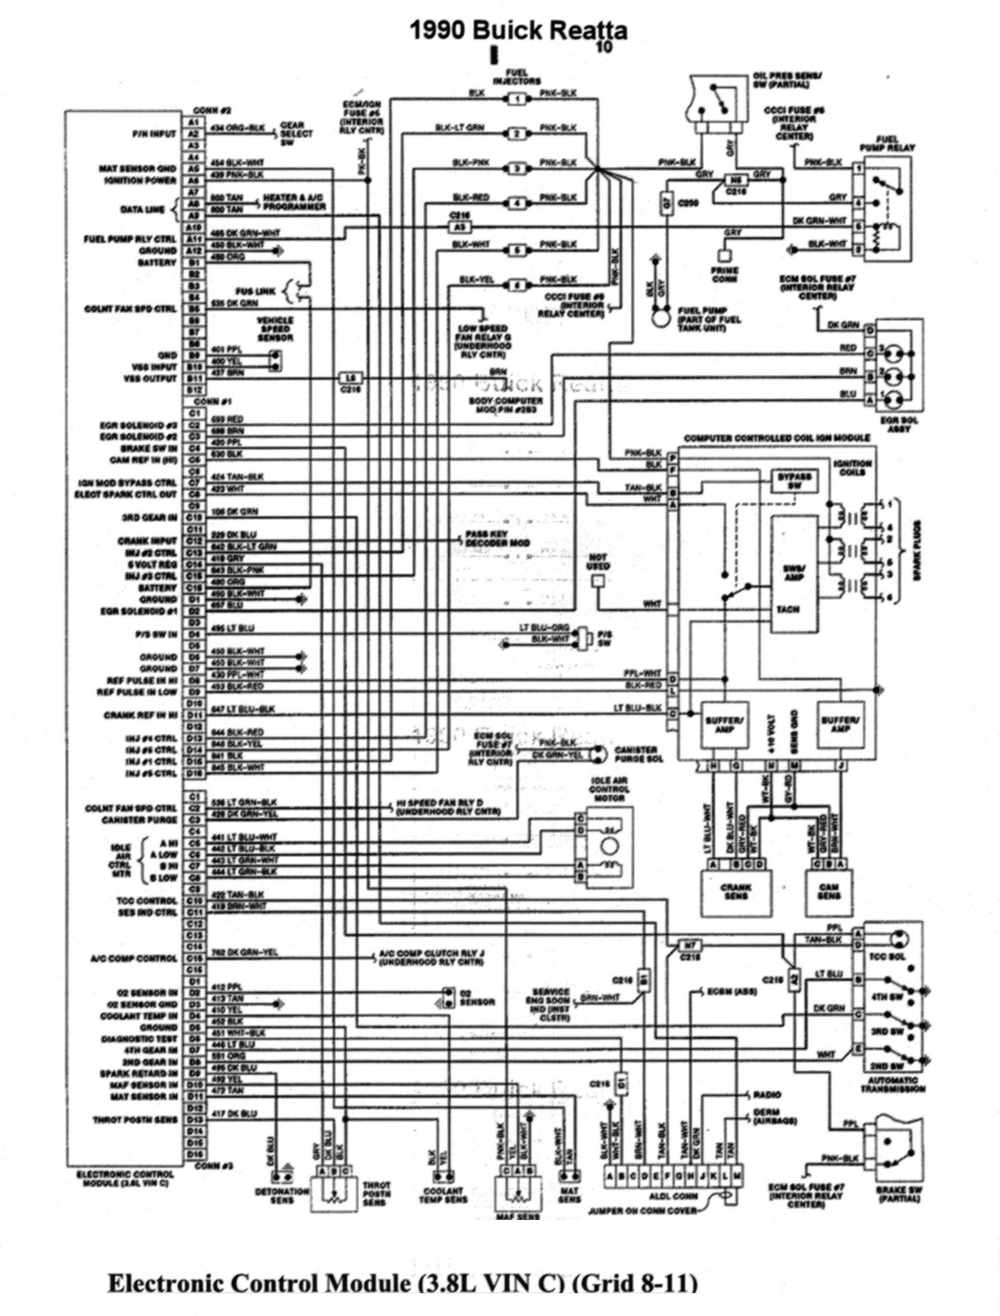 Wiring Diagram 3800 Supercharged Trusted Schematics Gm Engine Coolant 1989 Buick Data U2022 Series Supercharger